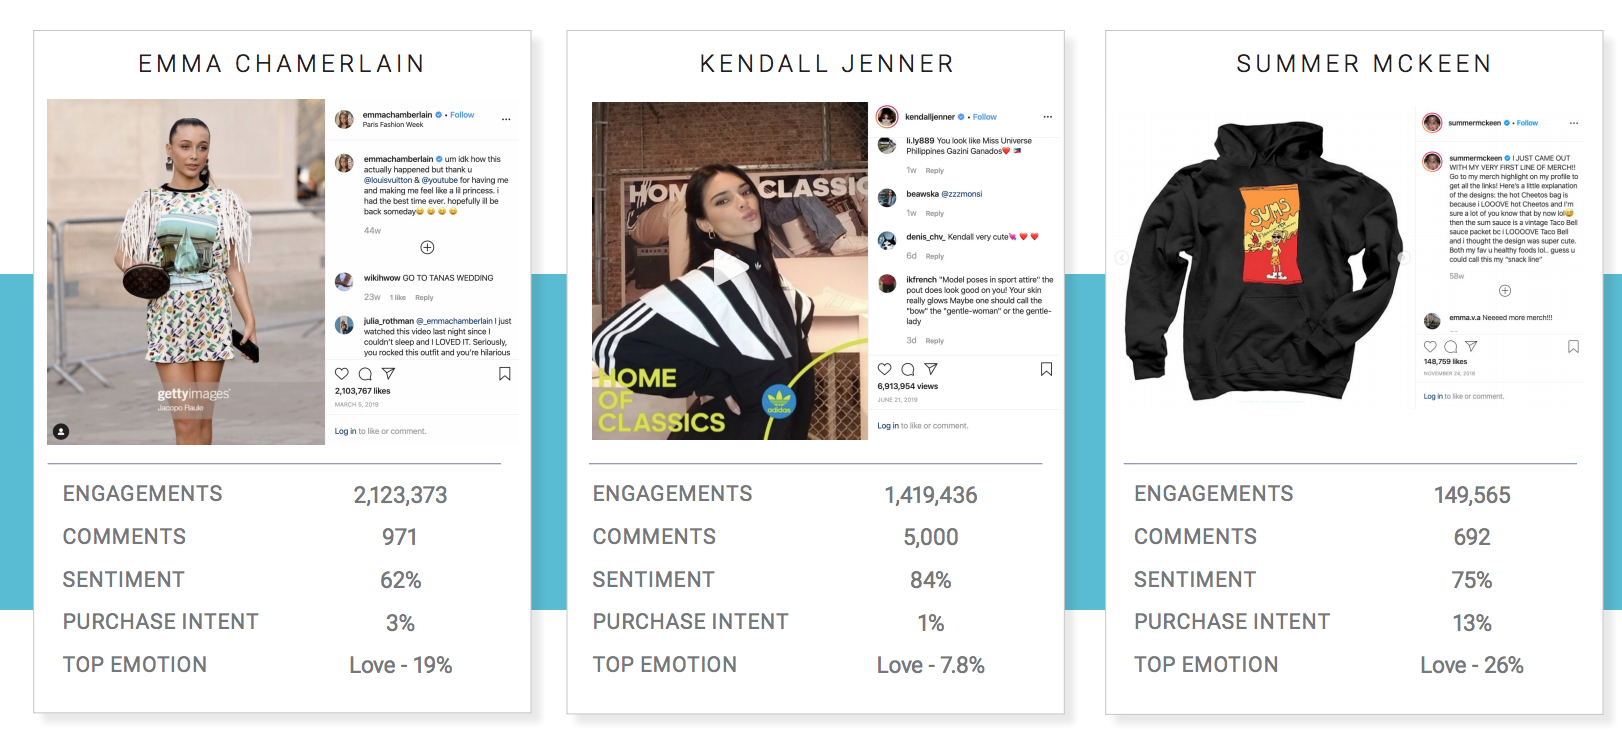 influencer campaign analysis with social media engagements